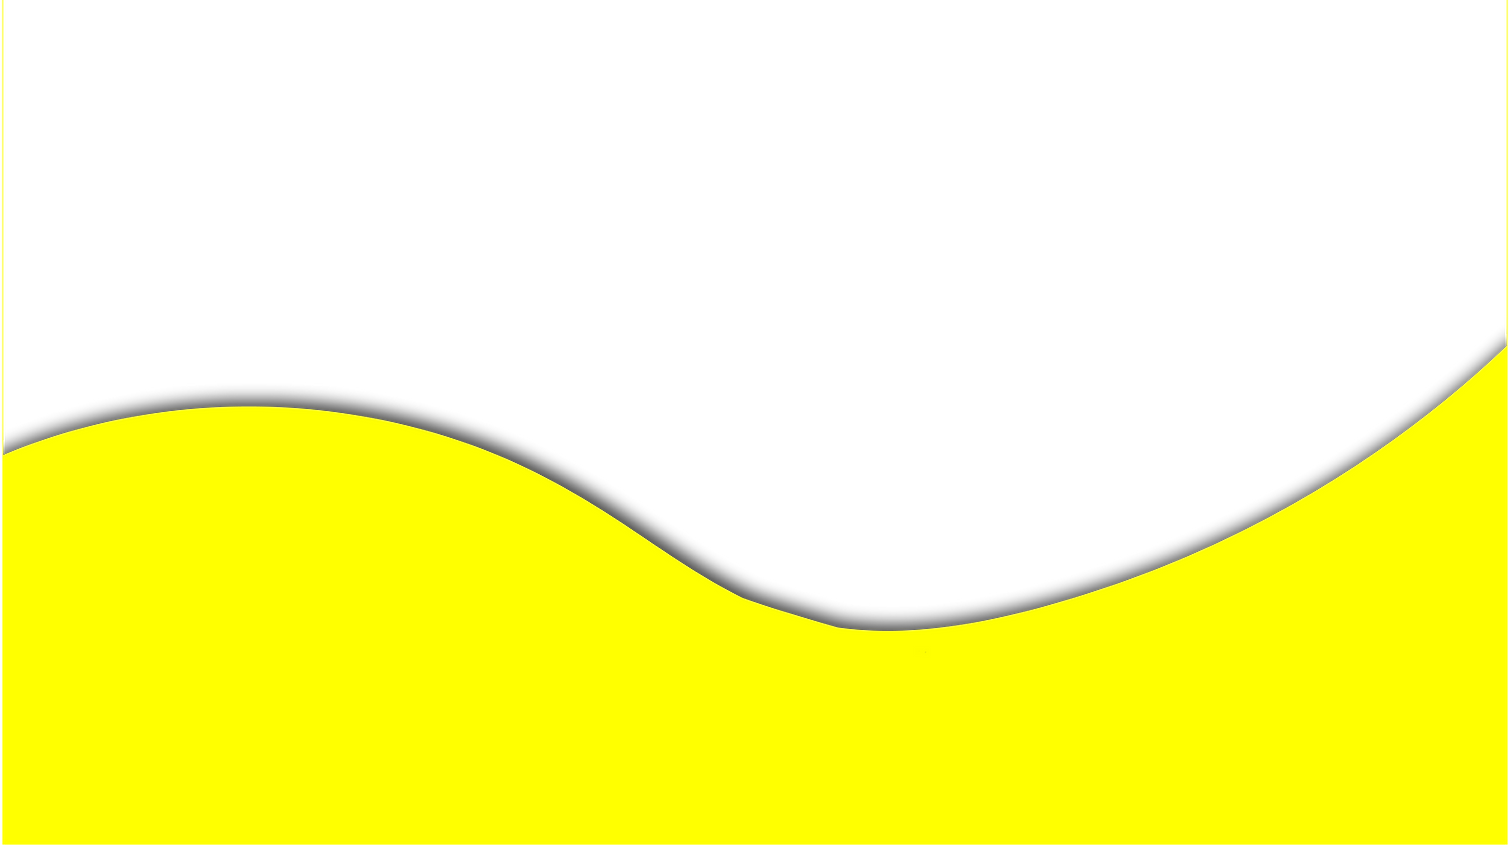 waves_ylw_yellow.png